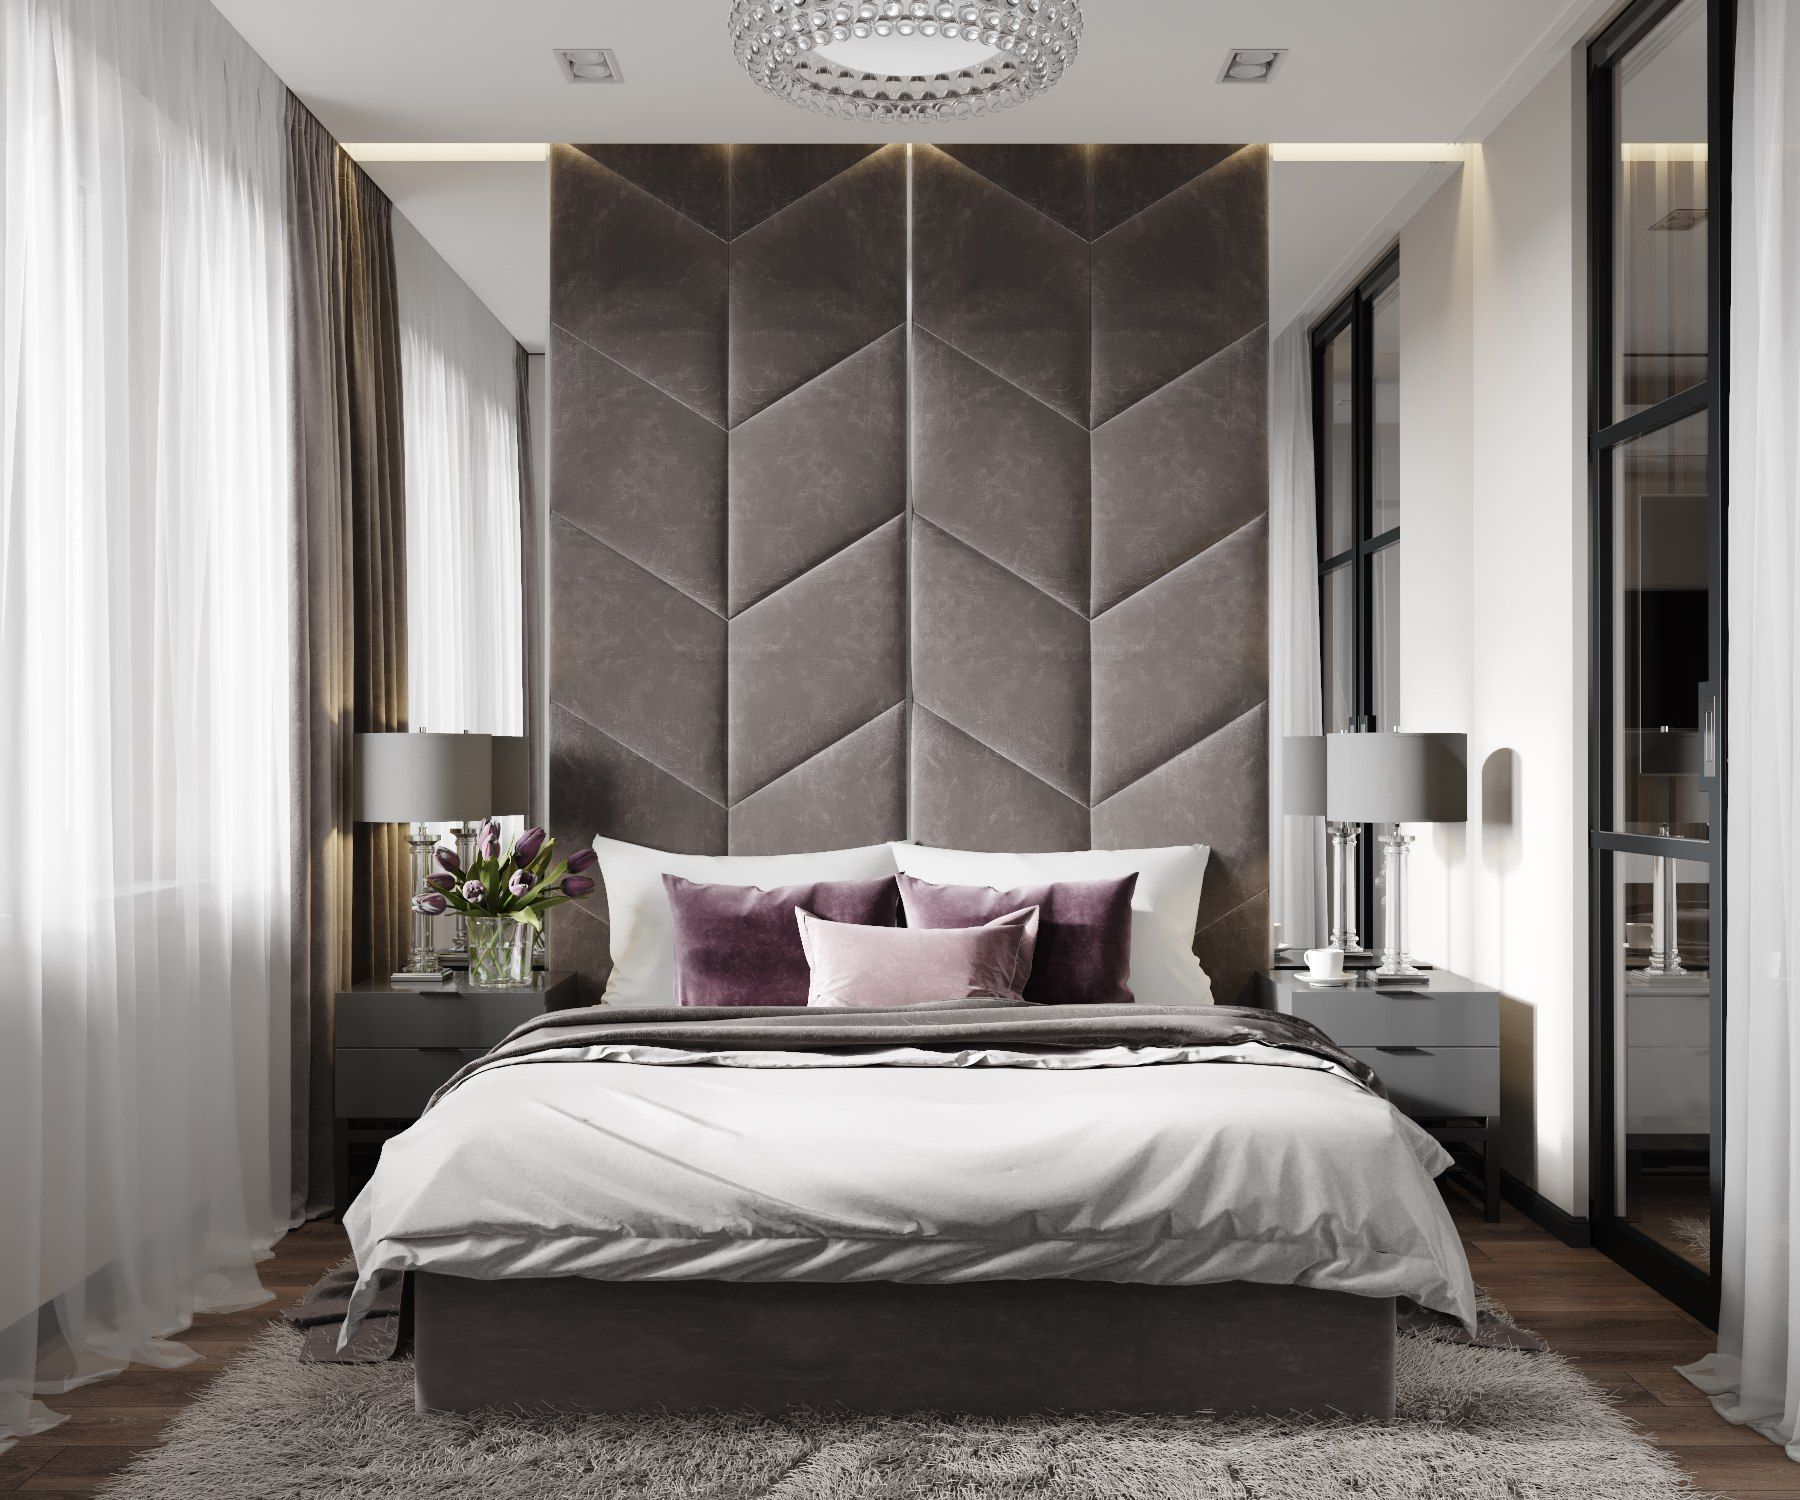 5 Calming Bedroom Design Ideas The Budget Decorator: 5+ Unearthly Bedroom Remodel On A Budget Built Ins Ideas